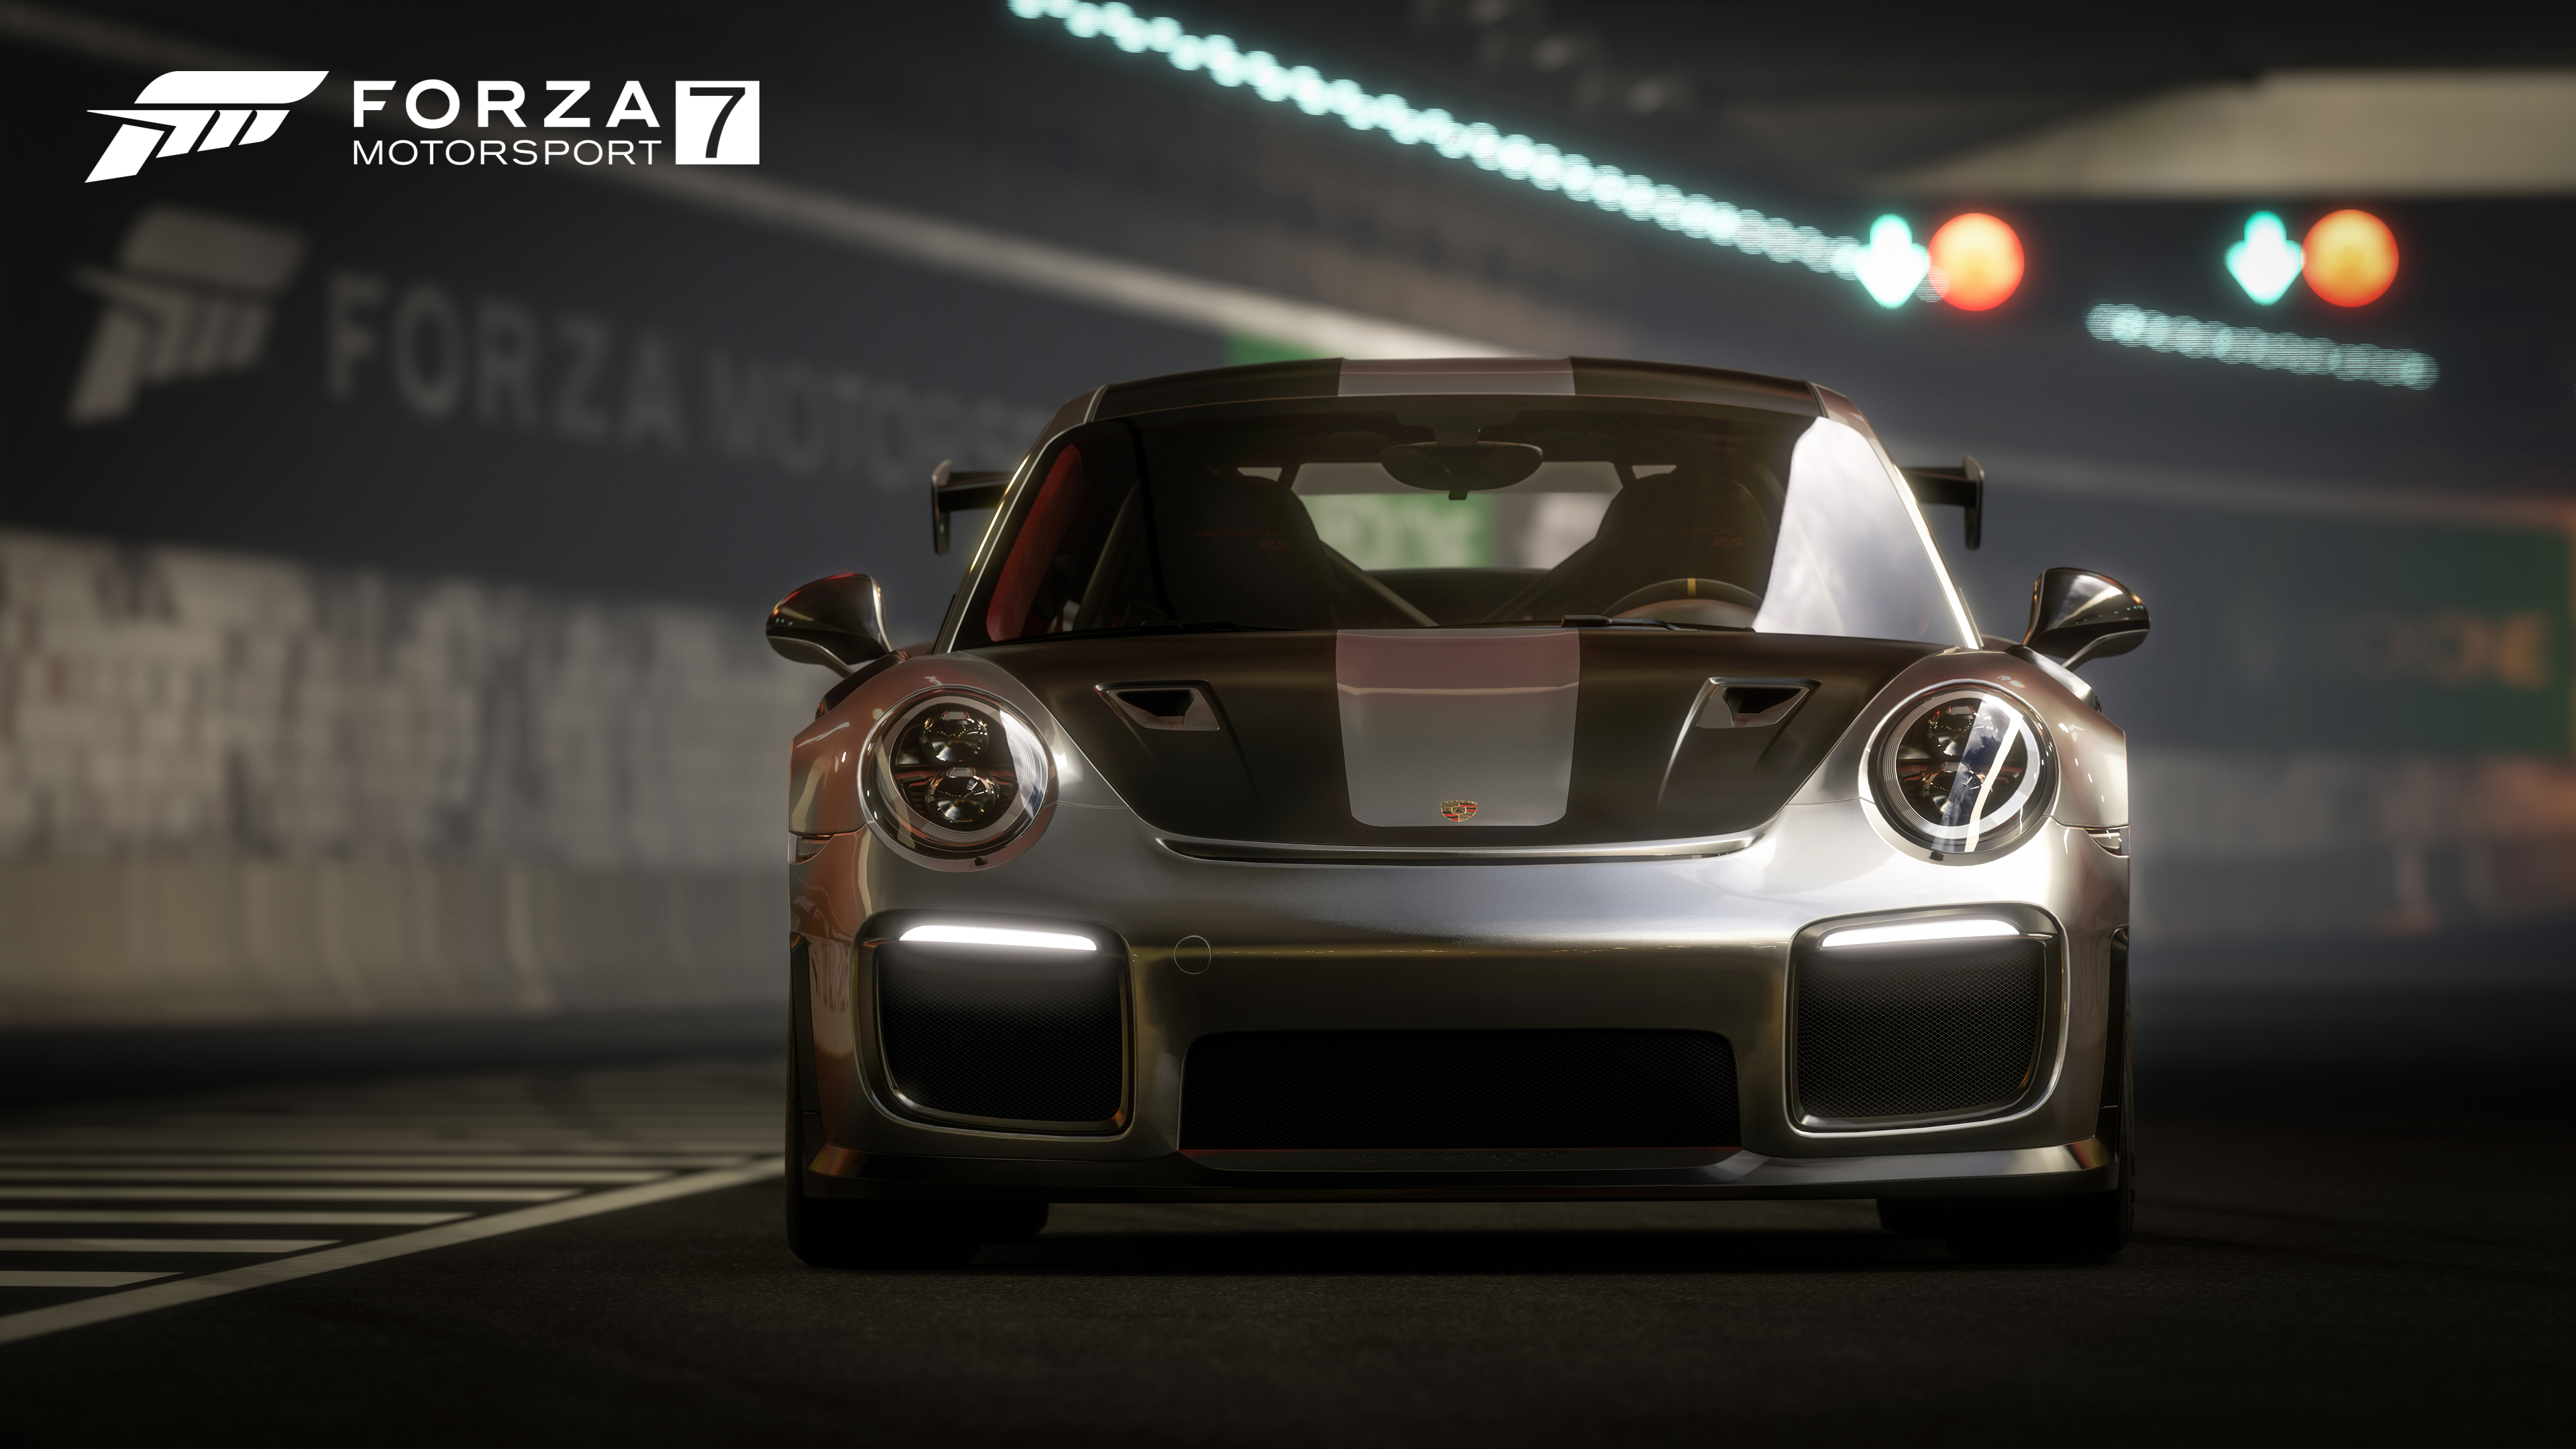 Forza Motorsport 7 Wallpapers Ultra Hd Gaming Backgrounds: Forza Motorsport 7 Porsche 4k, HD Games, 4k Wallpapers